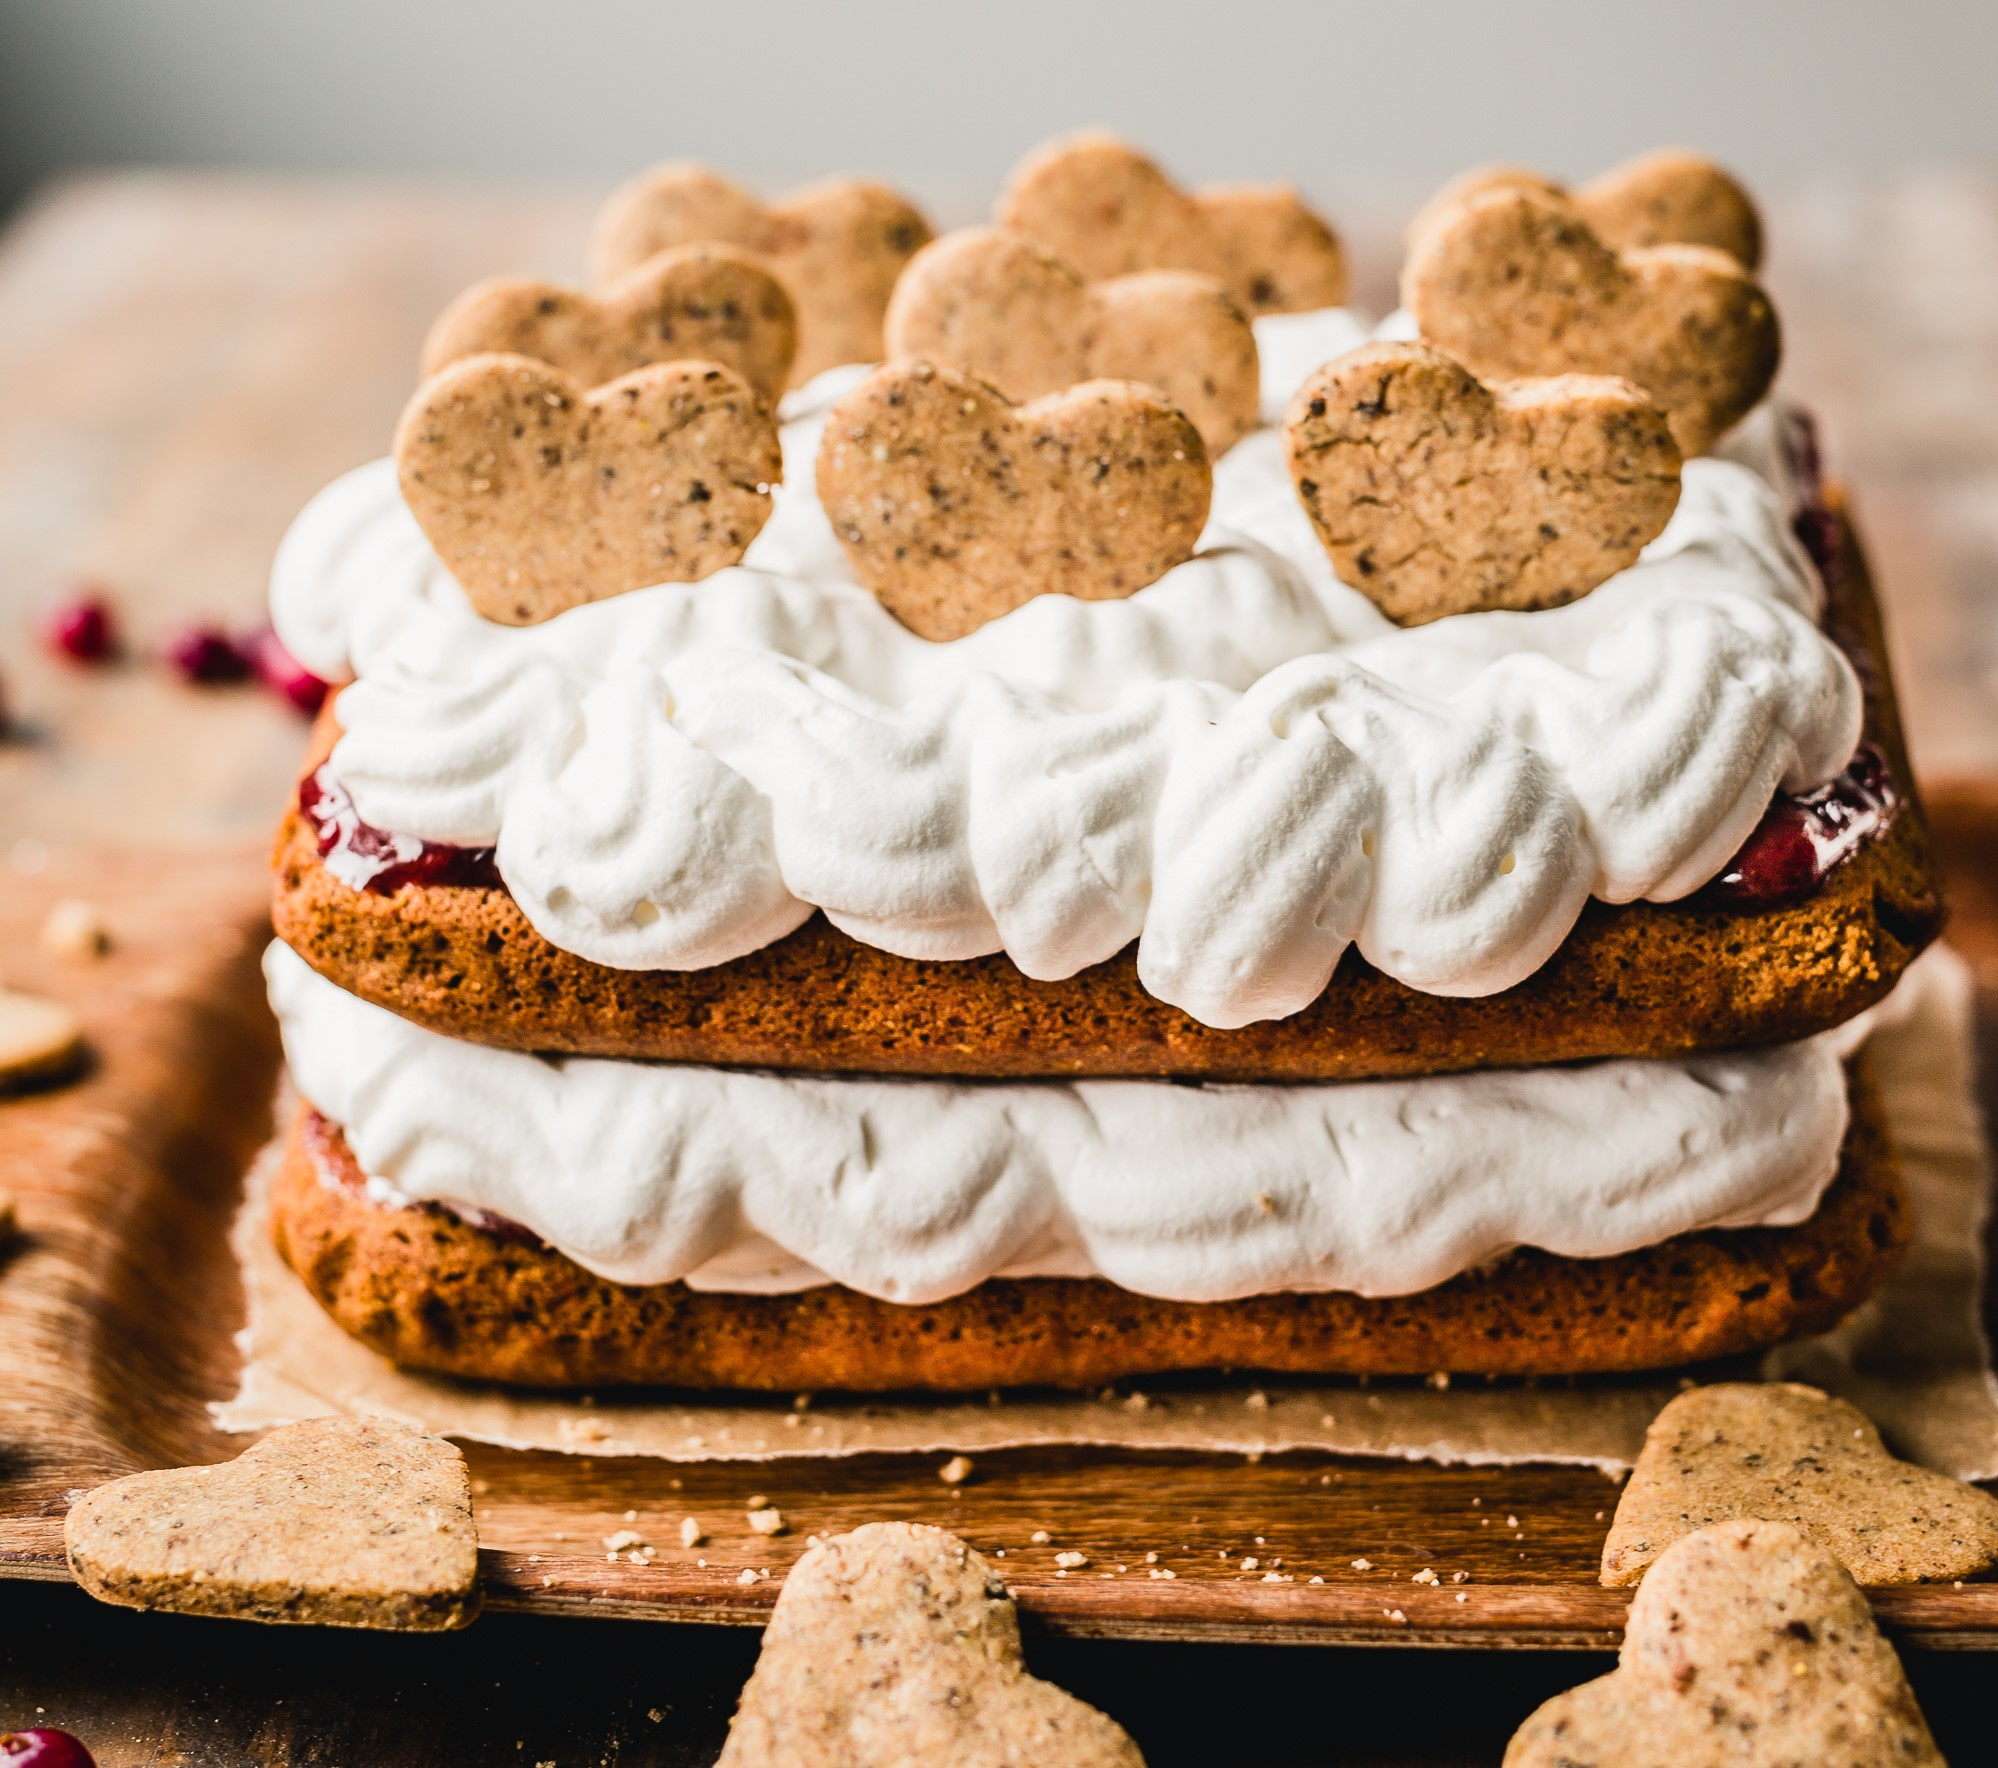 Gluten-free gingerbread cookie cake